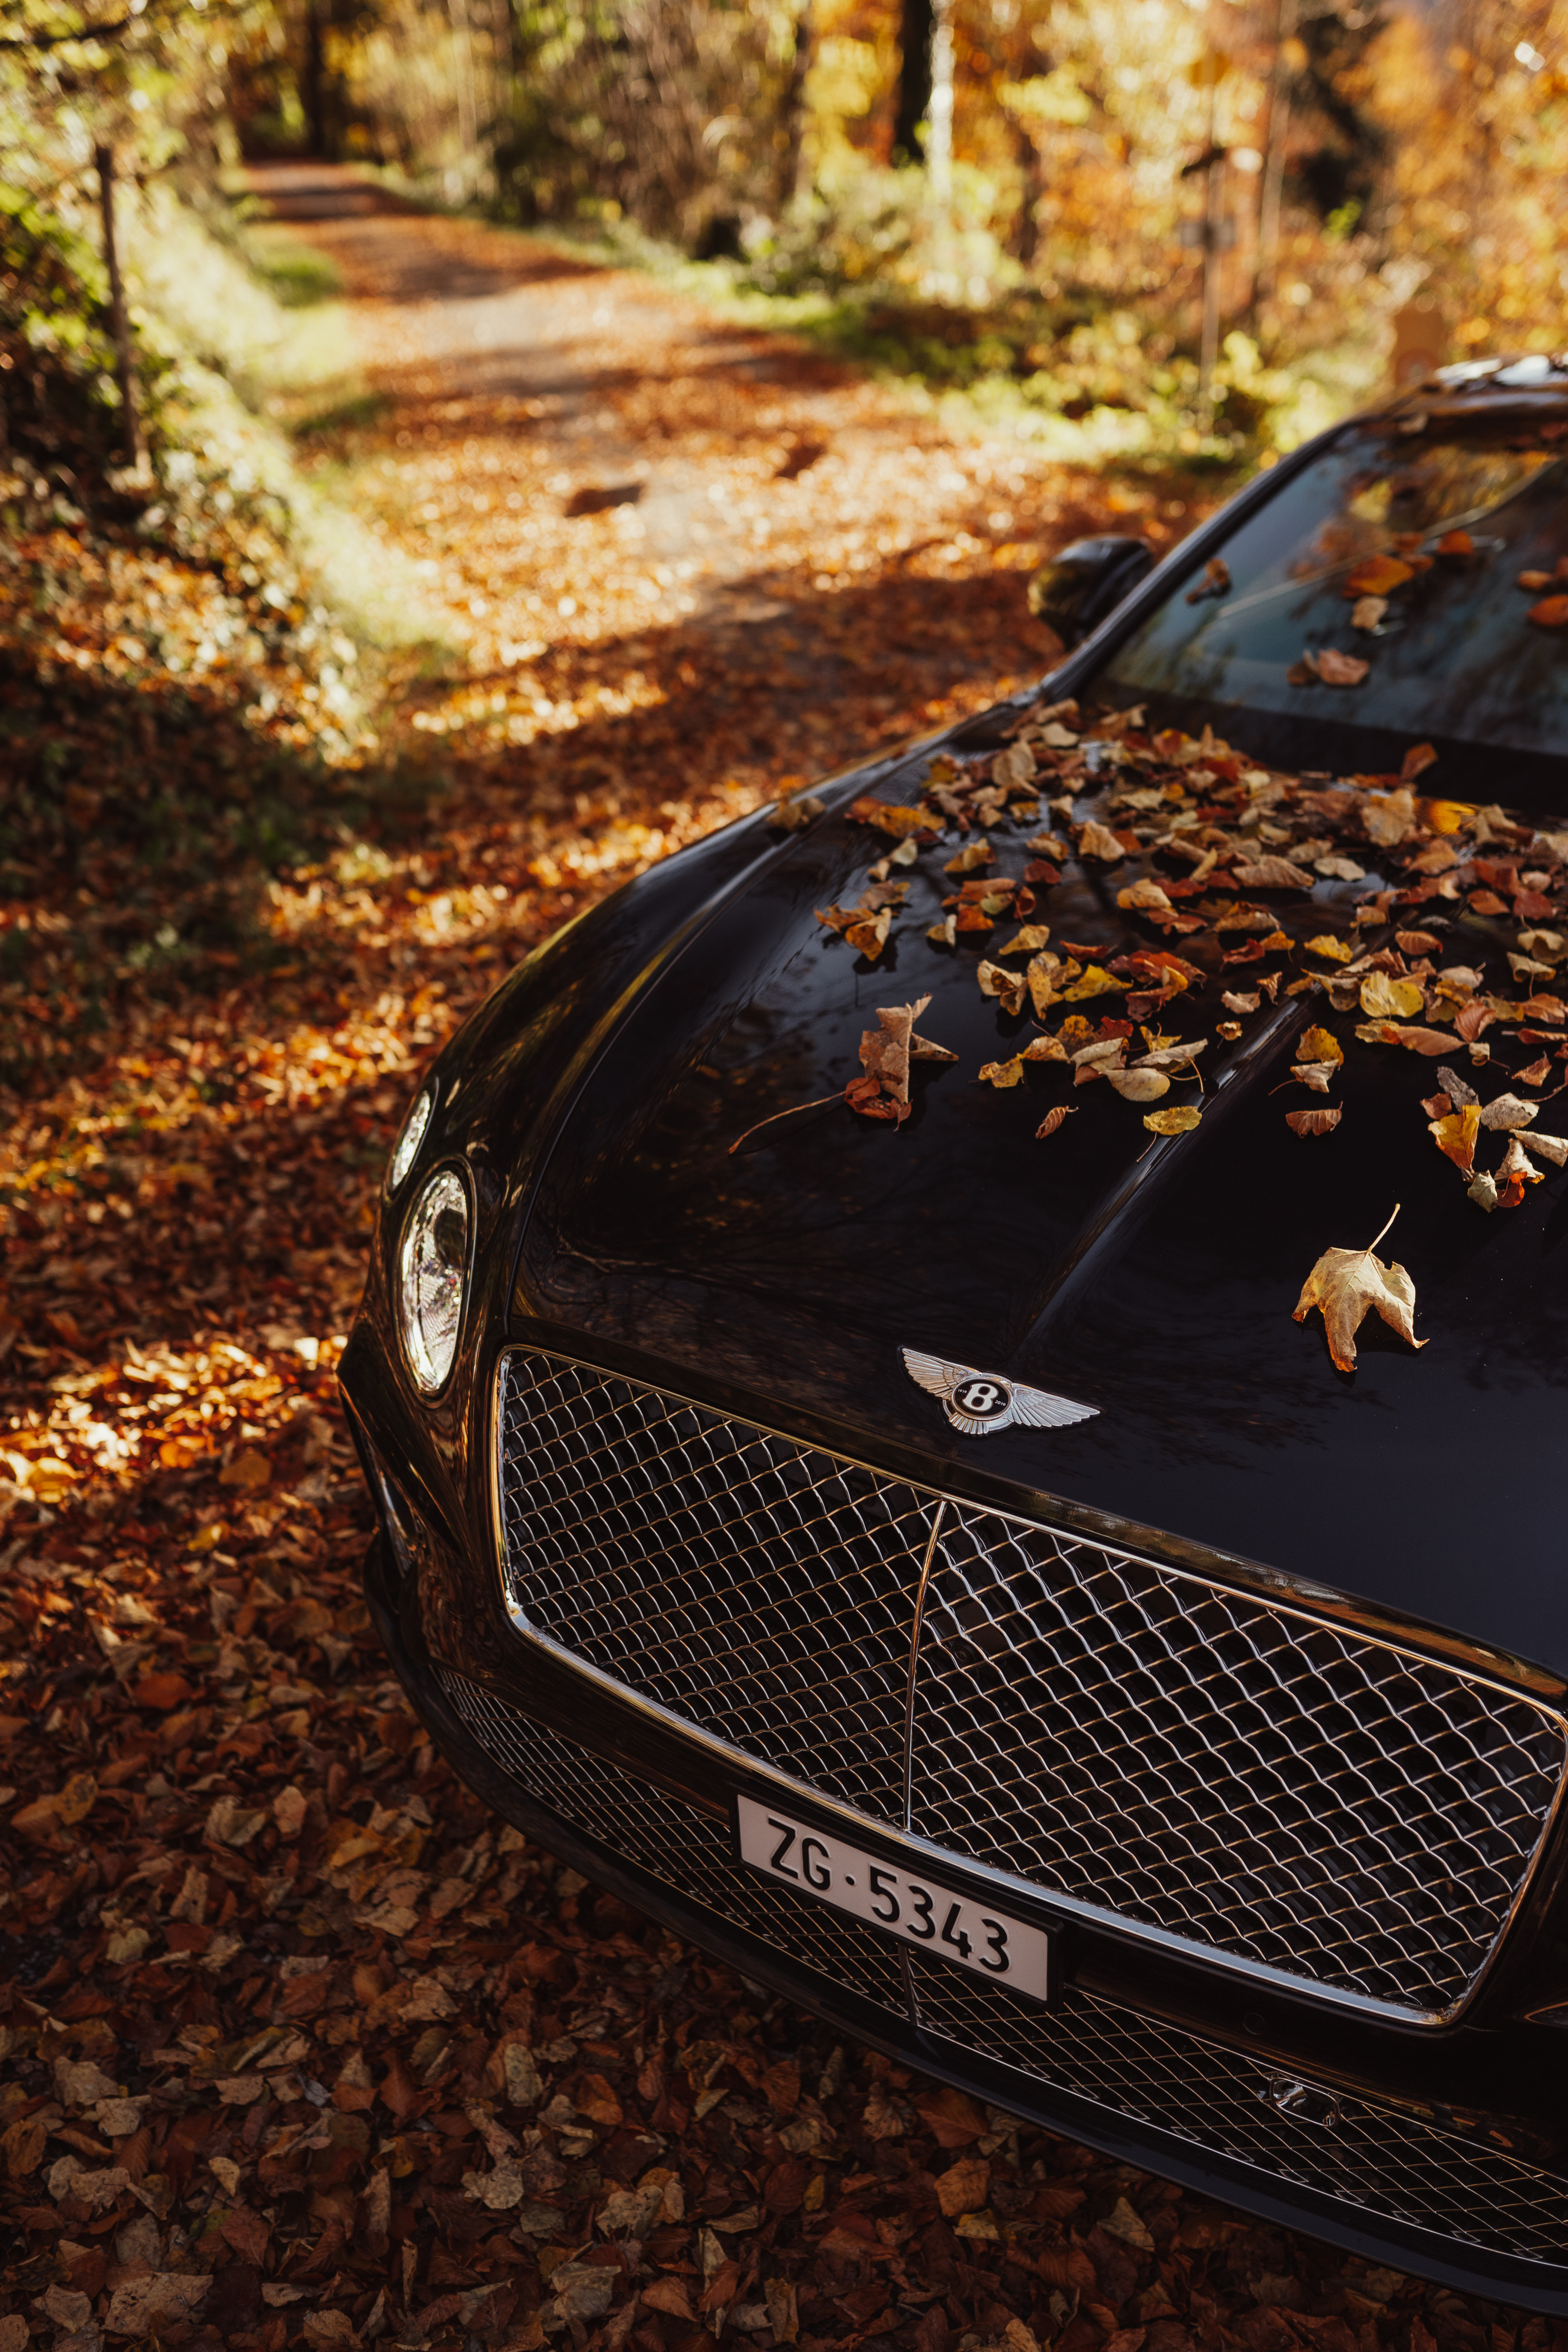 black-bmw-car-with-dried-leaves-on-ground